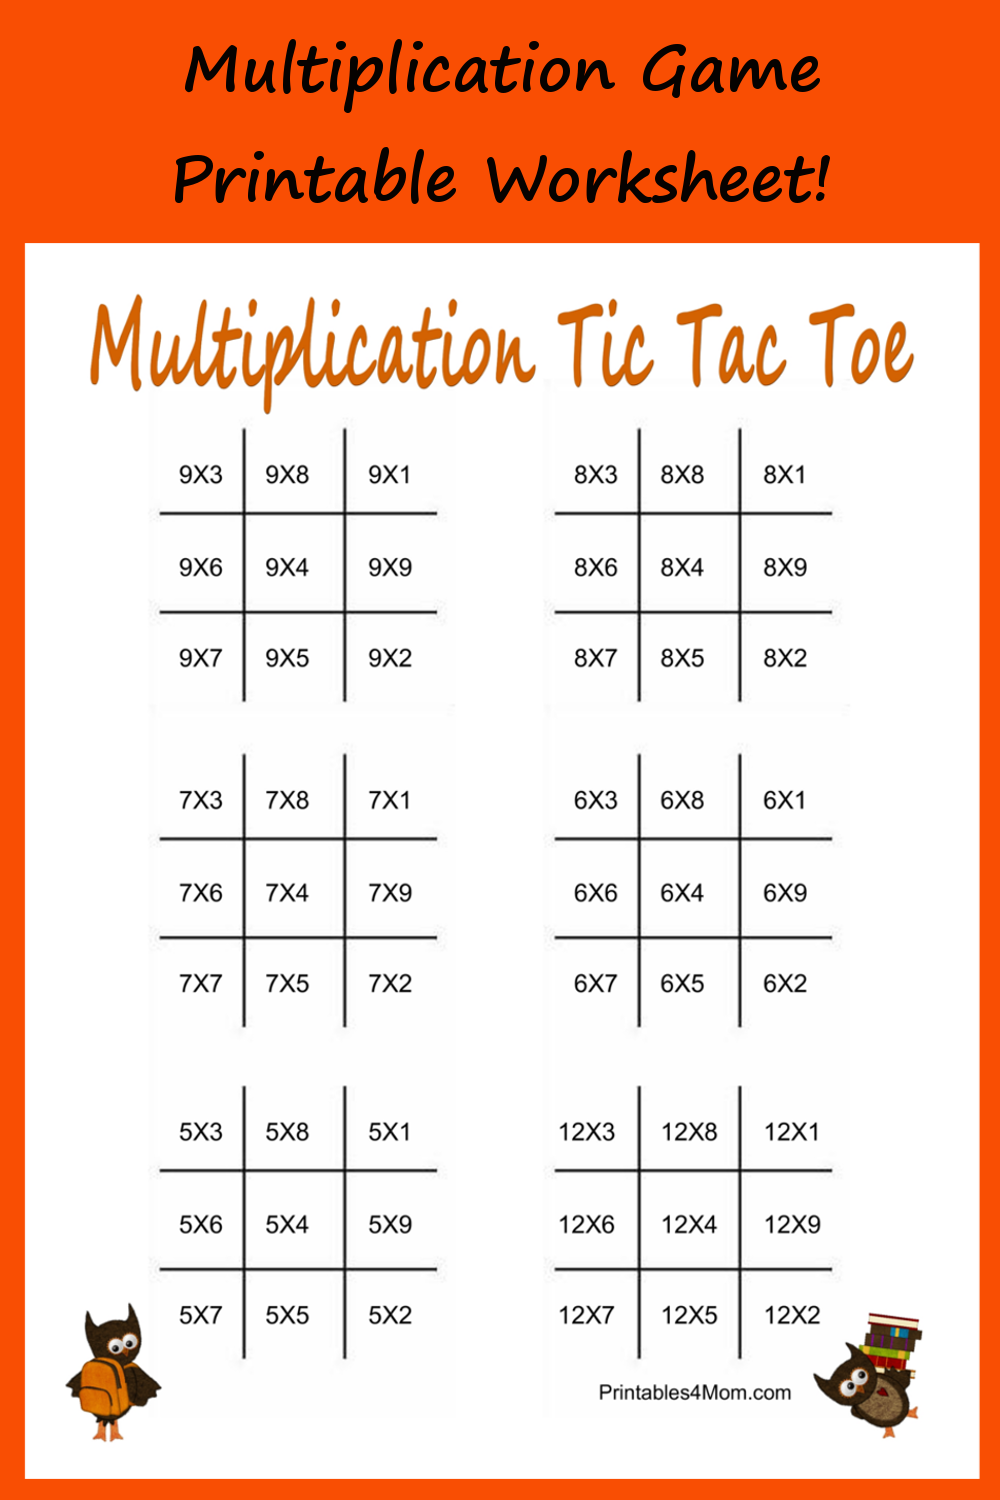 This is a picture of Old Fashioned Printable Multiplication Worksheets